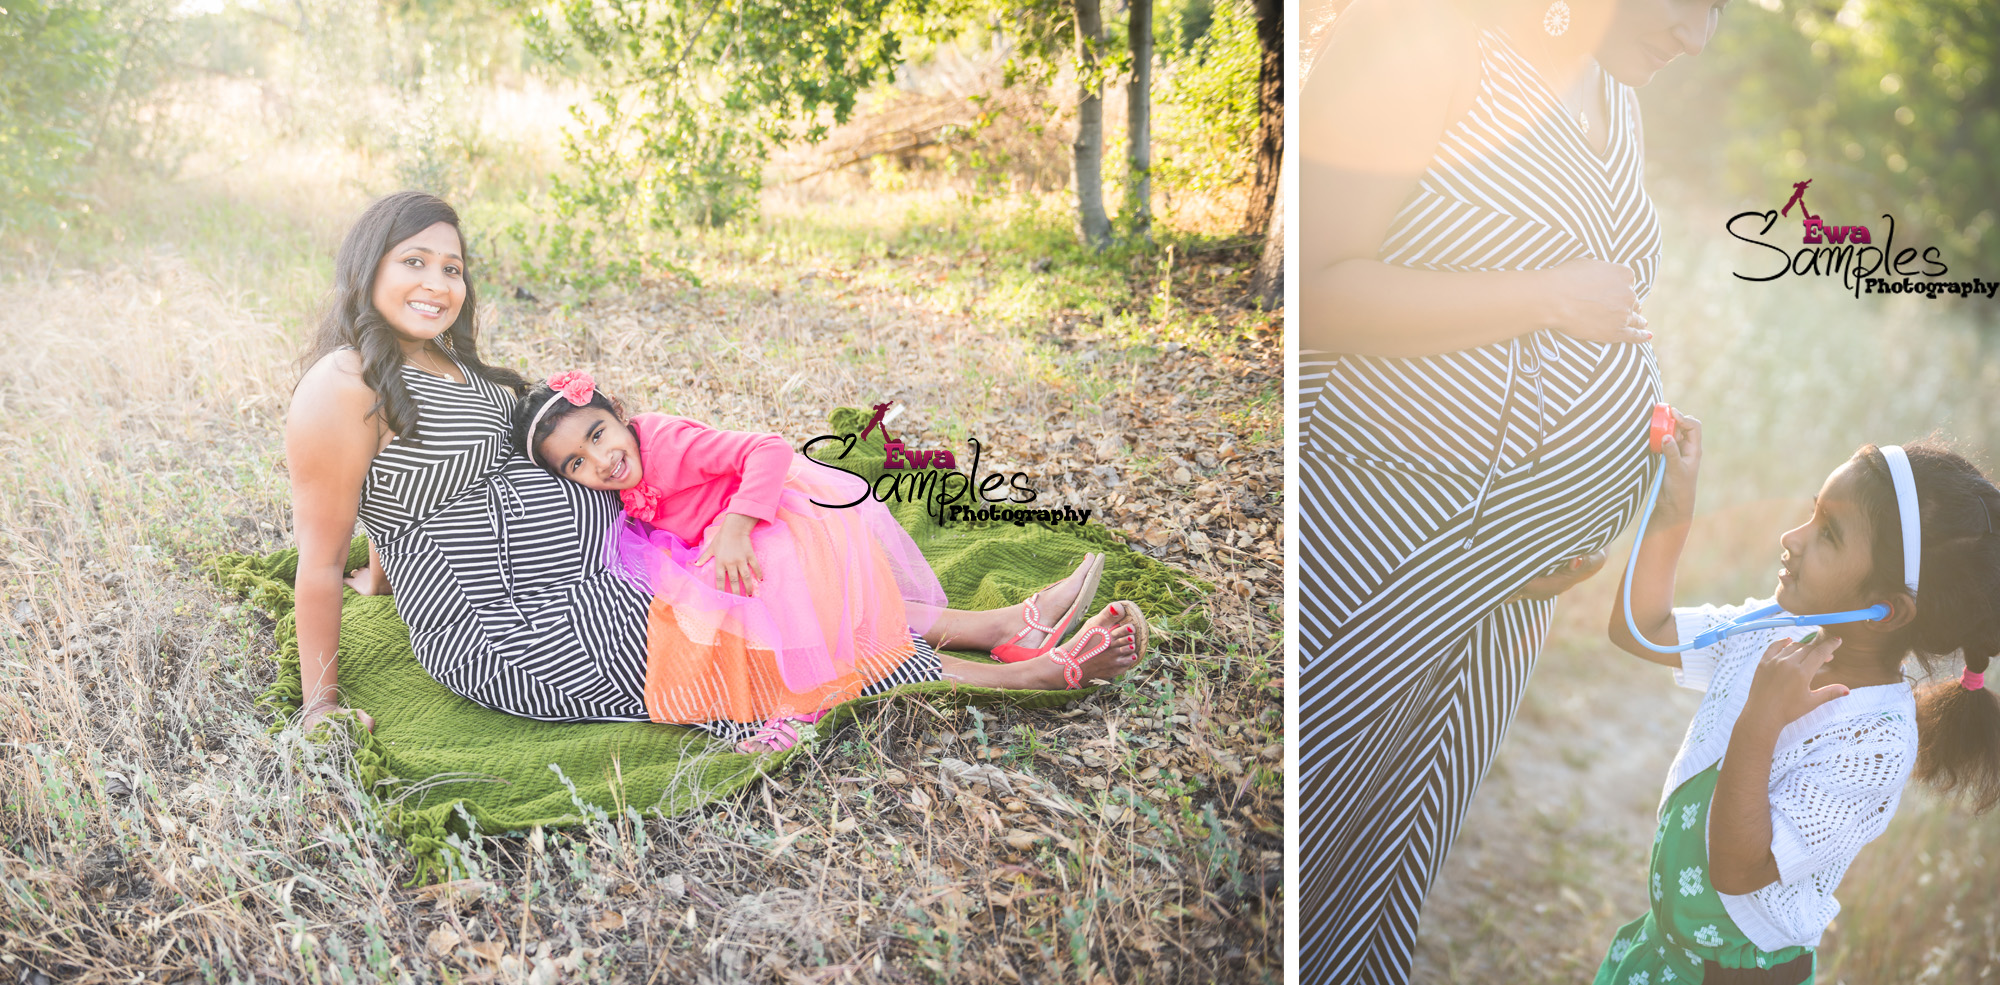 maternity_dress_maternity_photography_family_photography_san_jose_cupertino_bay_area_ewa_samples